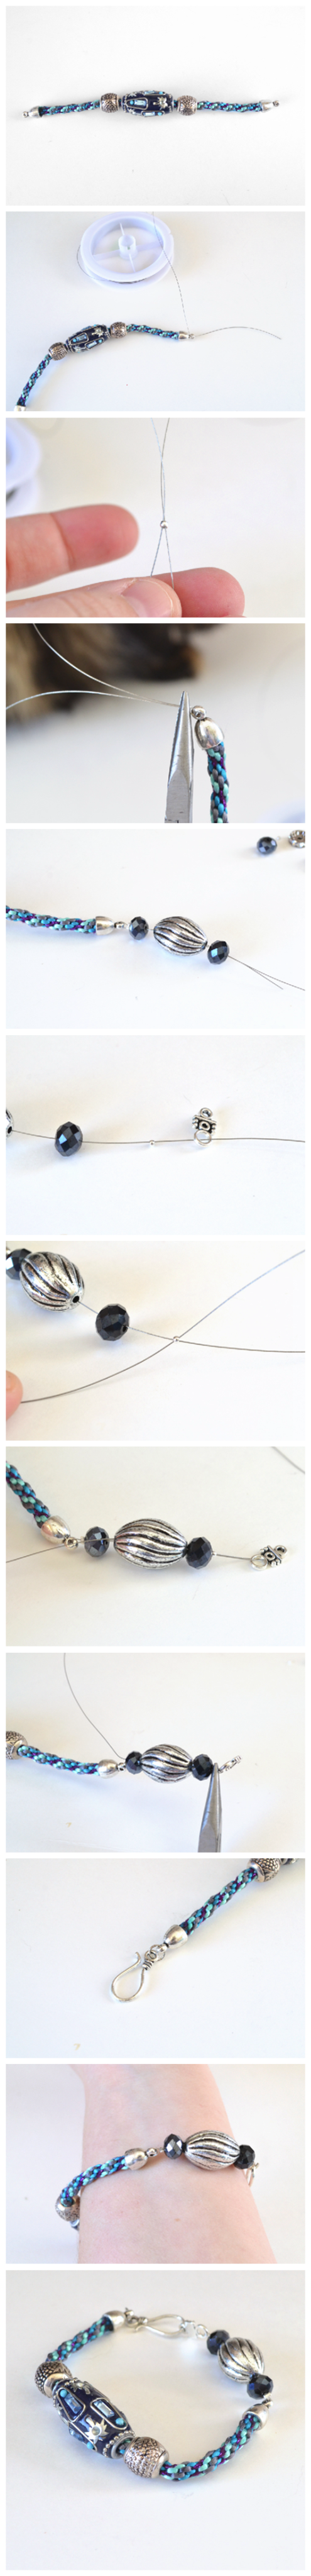 DIY Bracelet Using a Too Short Kumihimo Braid